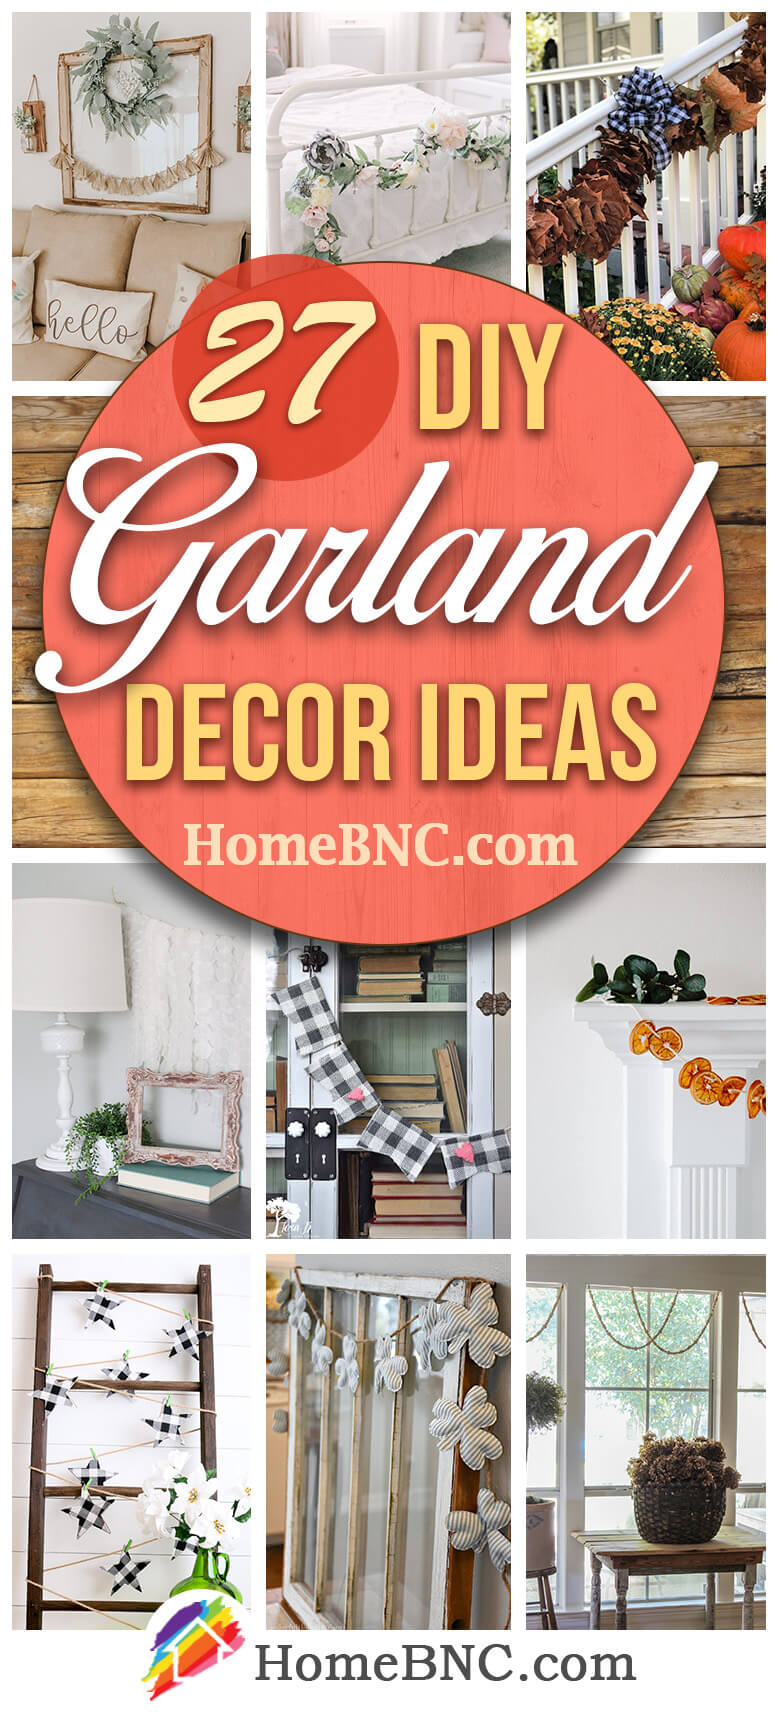 27 Best Diy Garland Decor Ideas To Give Your Home A Pretty Look In 2021